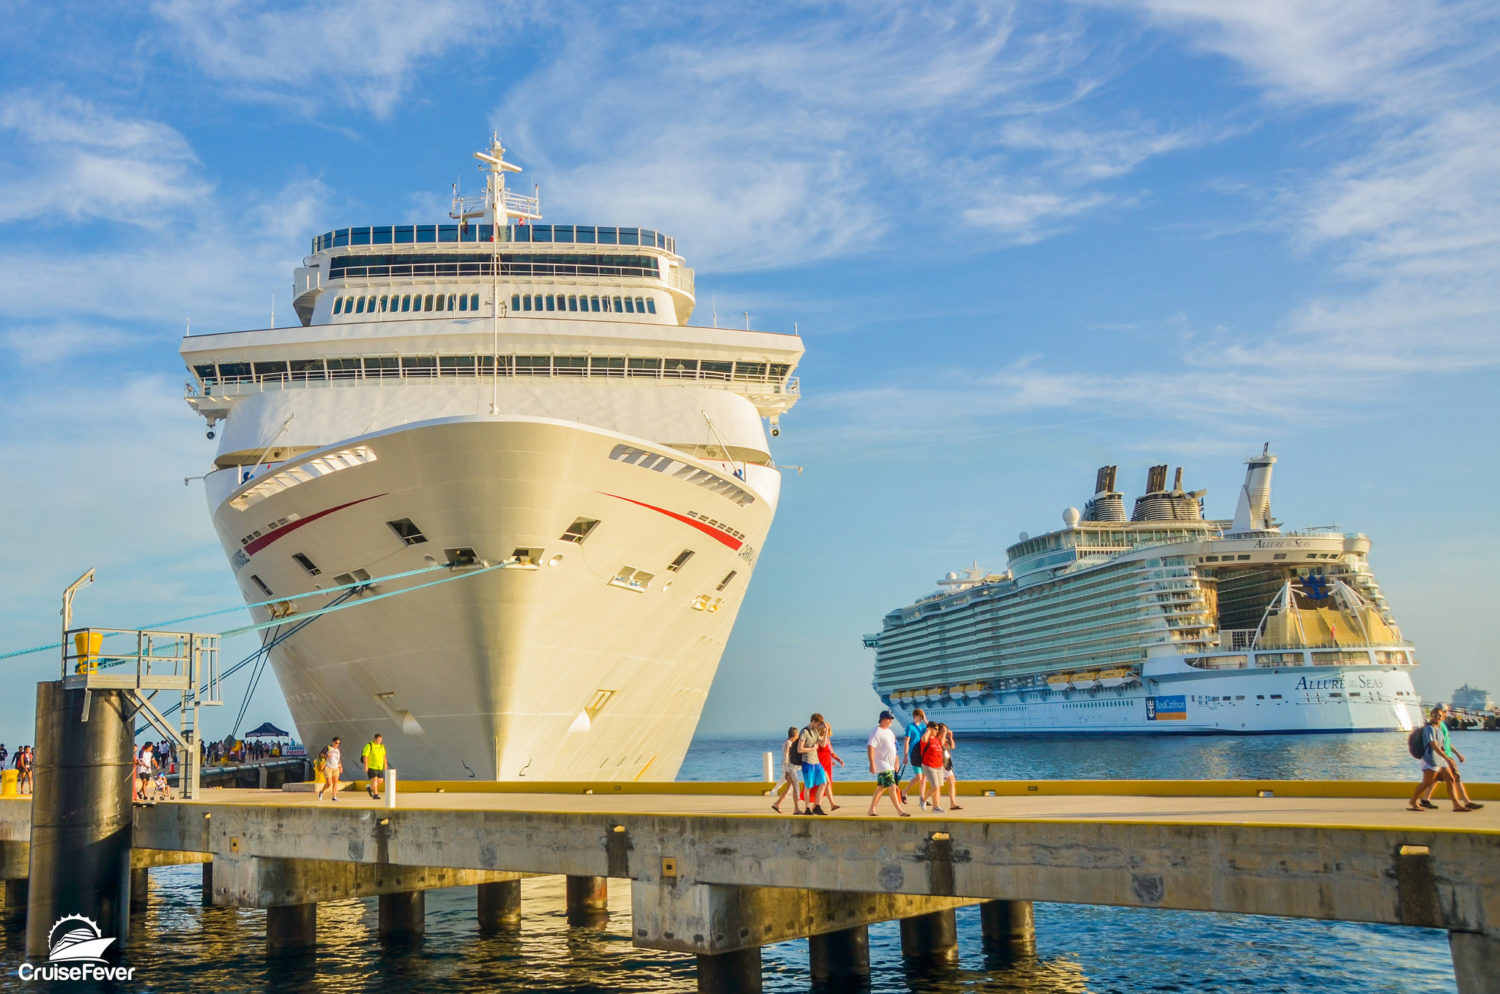 How to Compare Prices on Cruises Before You Book